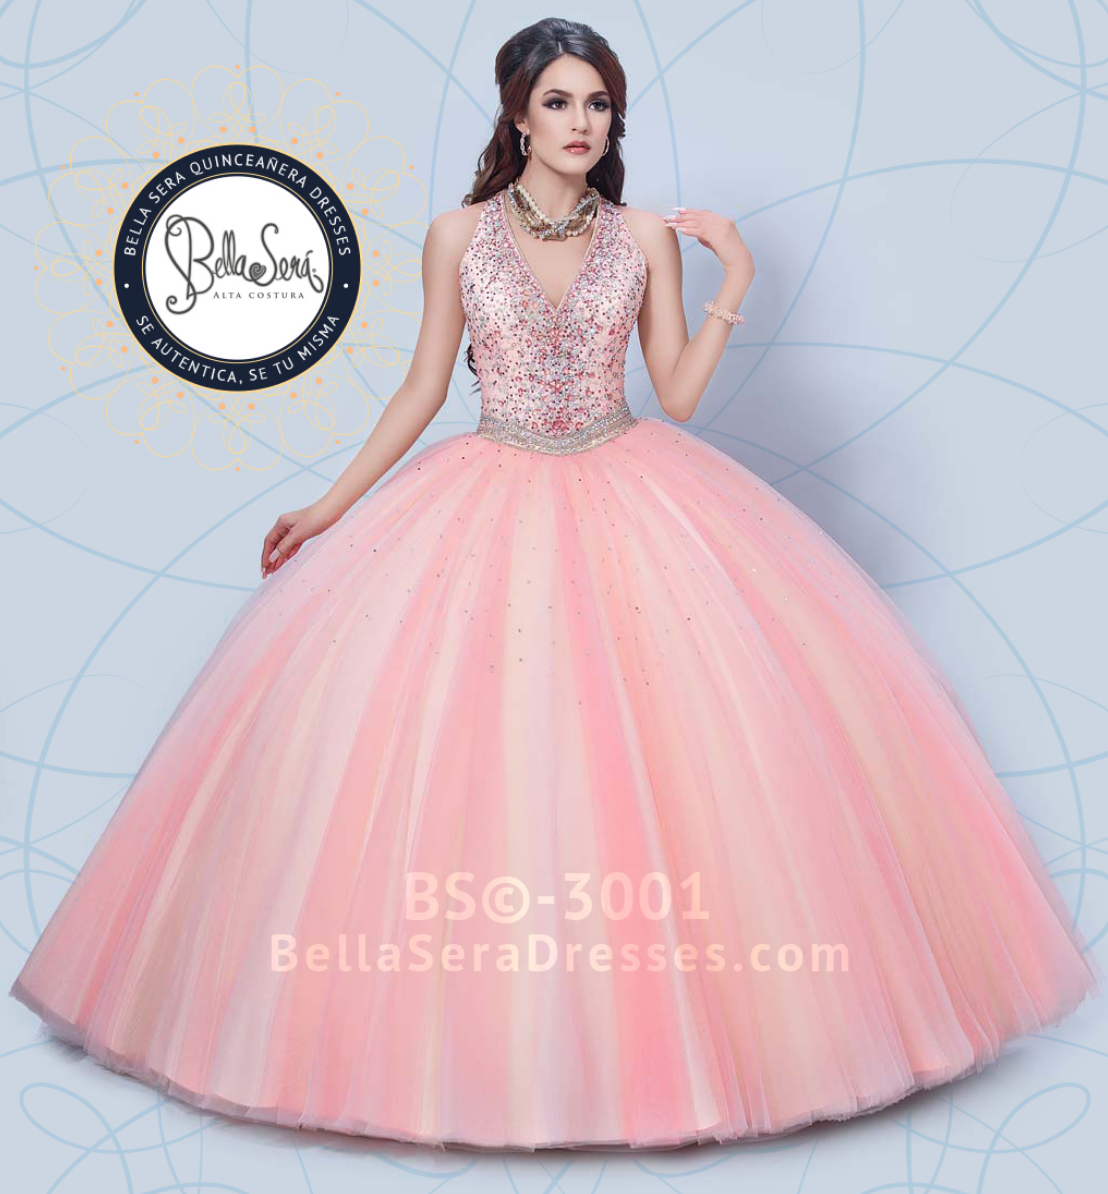 Marus Boutique | Quinceanera and Prom Dresses Round Rock TX